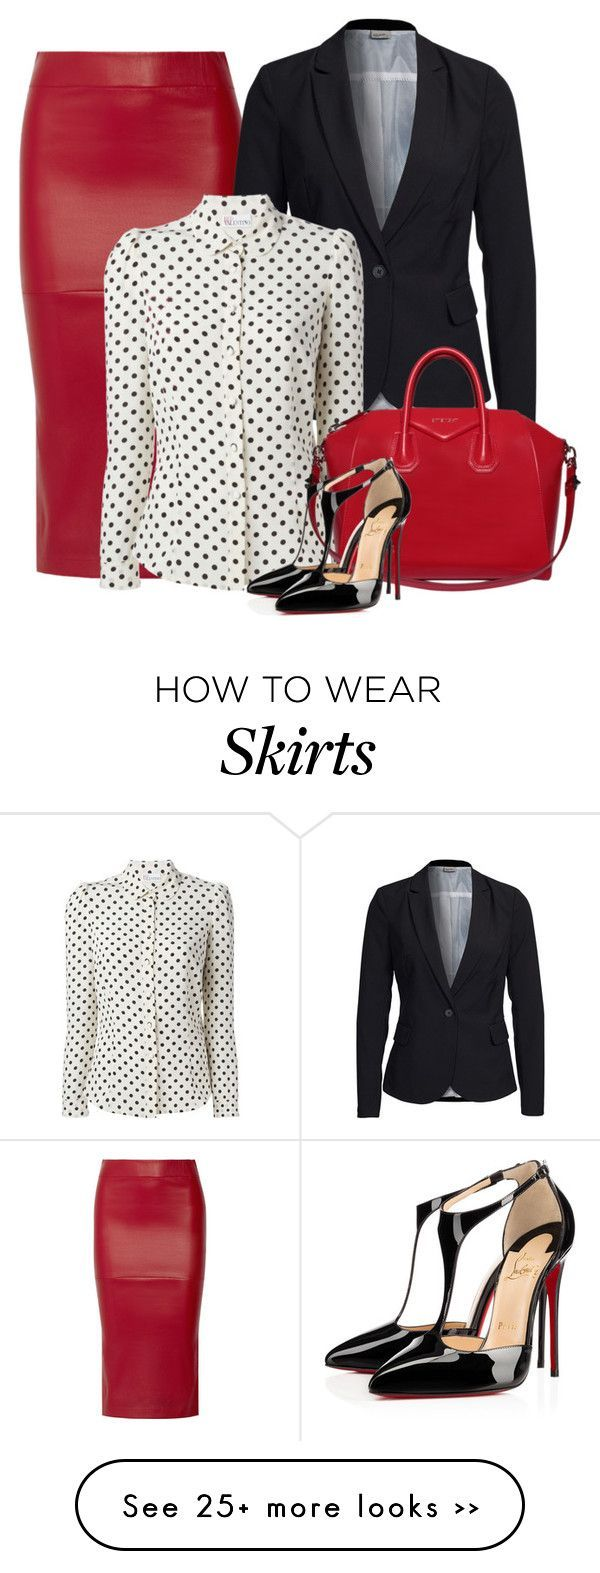 """""""Leather office skirt"""" by danigrll on Polyvore featuring Zero + Maria Cornejo, Vero Moda, RED Valentino, Givenchy and Christian Louboutin"""